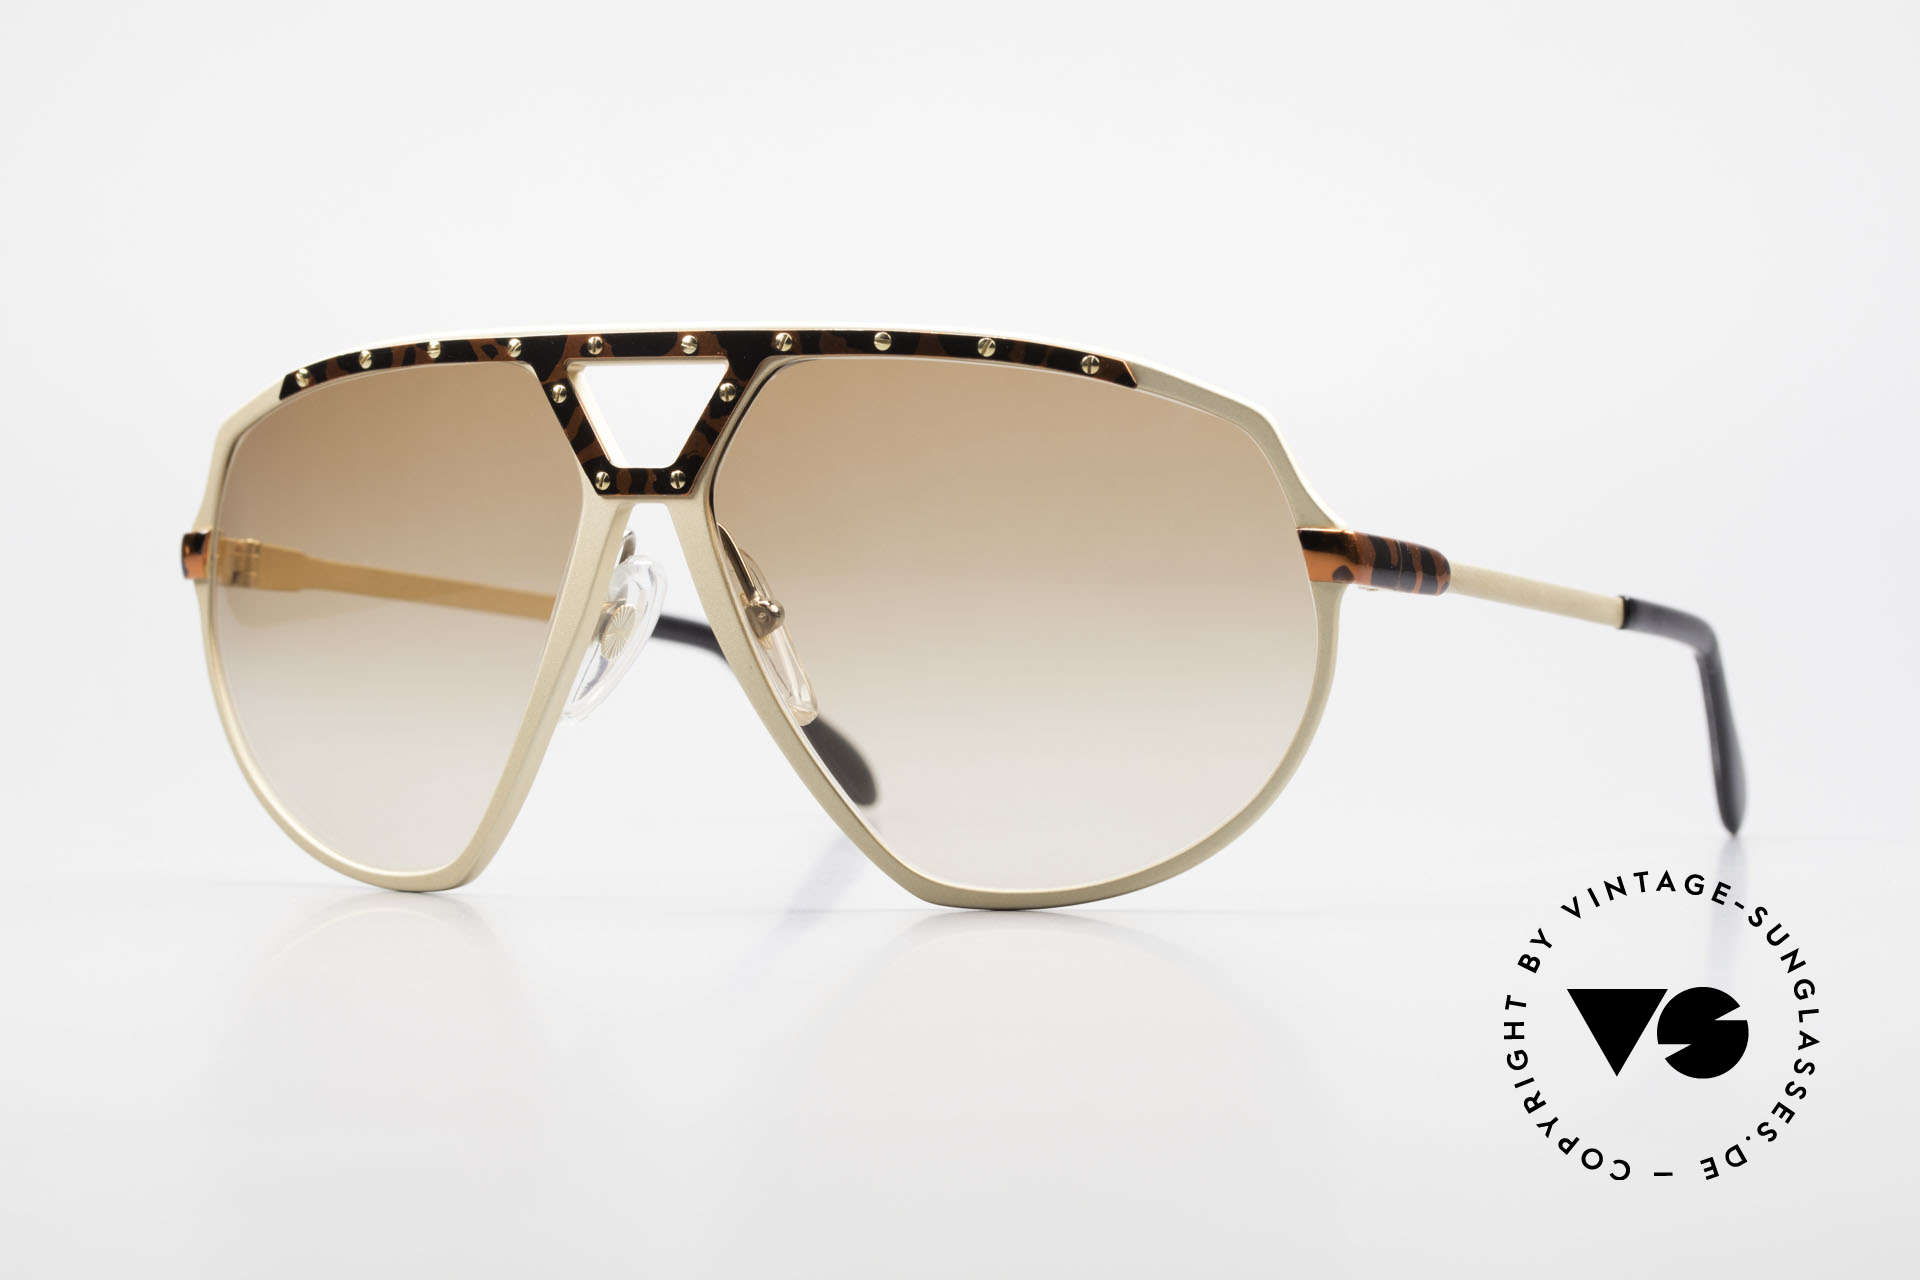 Alpina M1/8 80's West Germany Sunglasses, M1/8 - the modification of the legendary Alpina M1, Made for Men